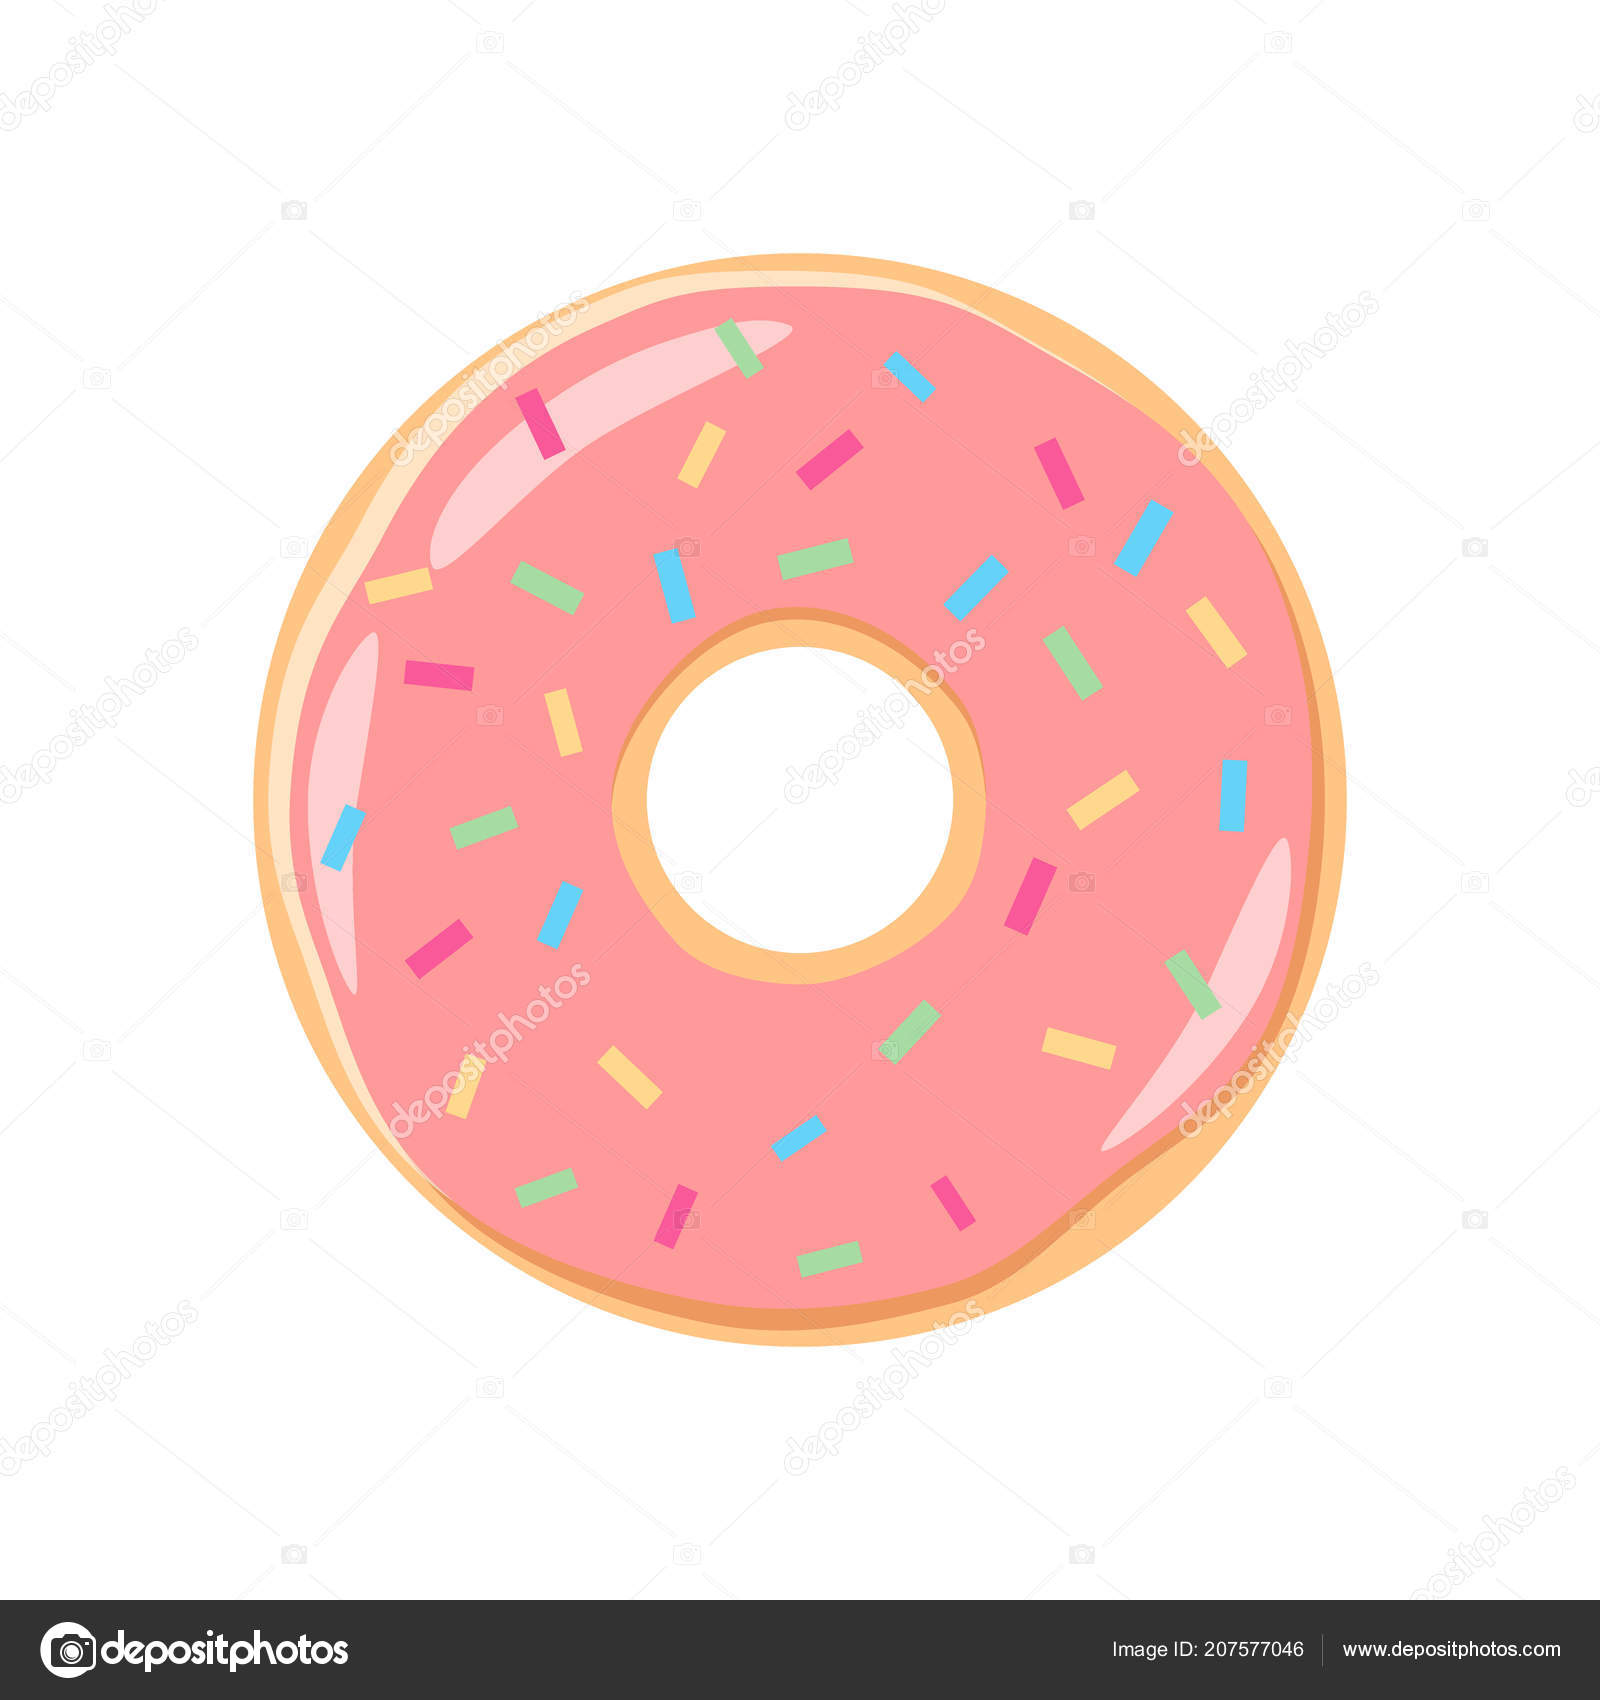 Clipart: doughnuts | Colorful Pink Icing Donut Cartoon Pink